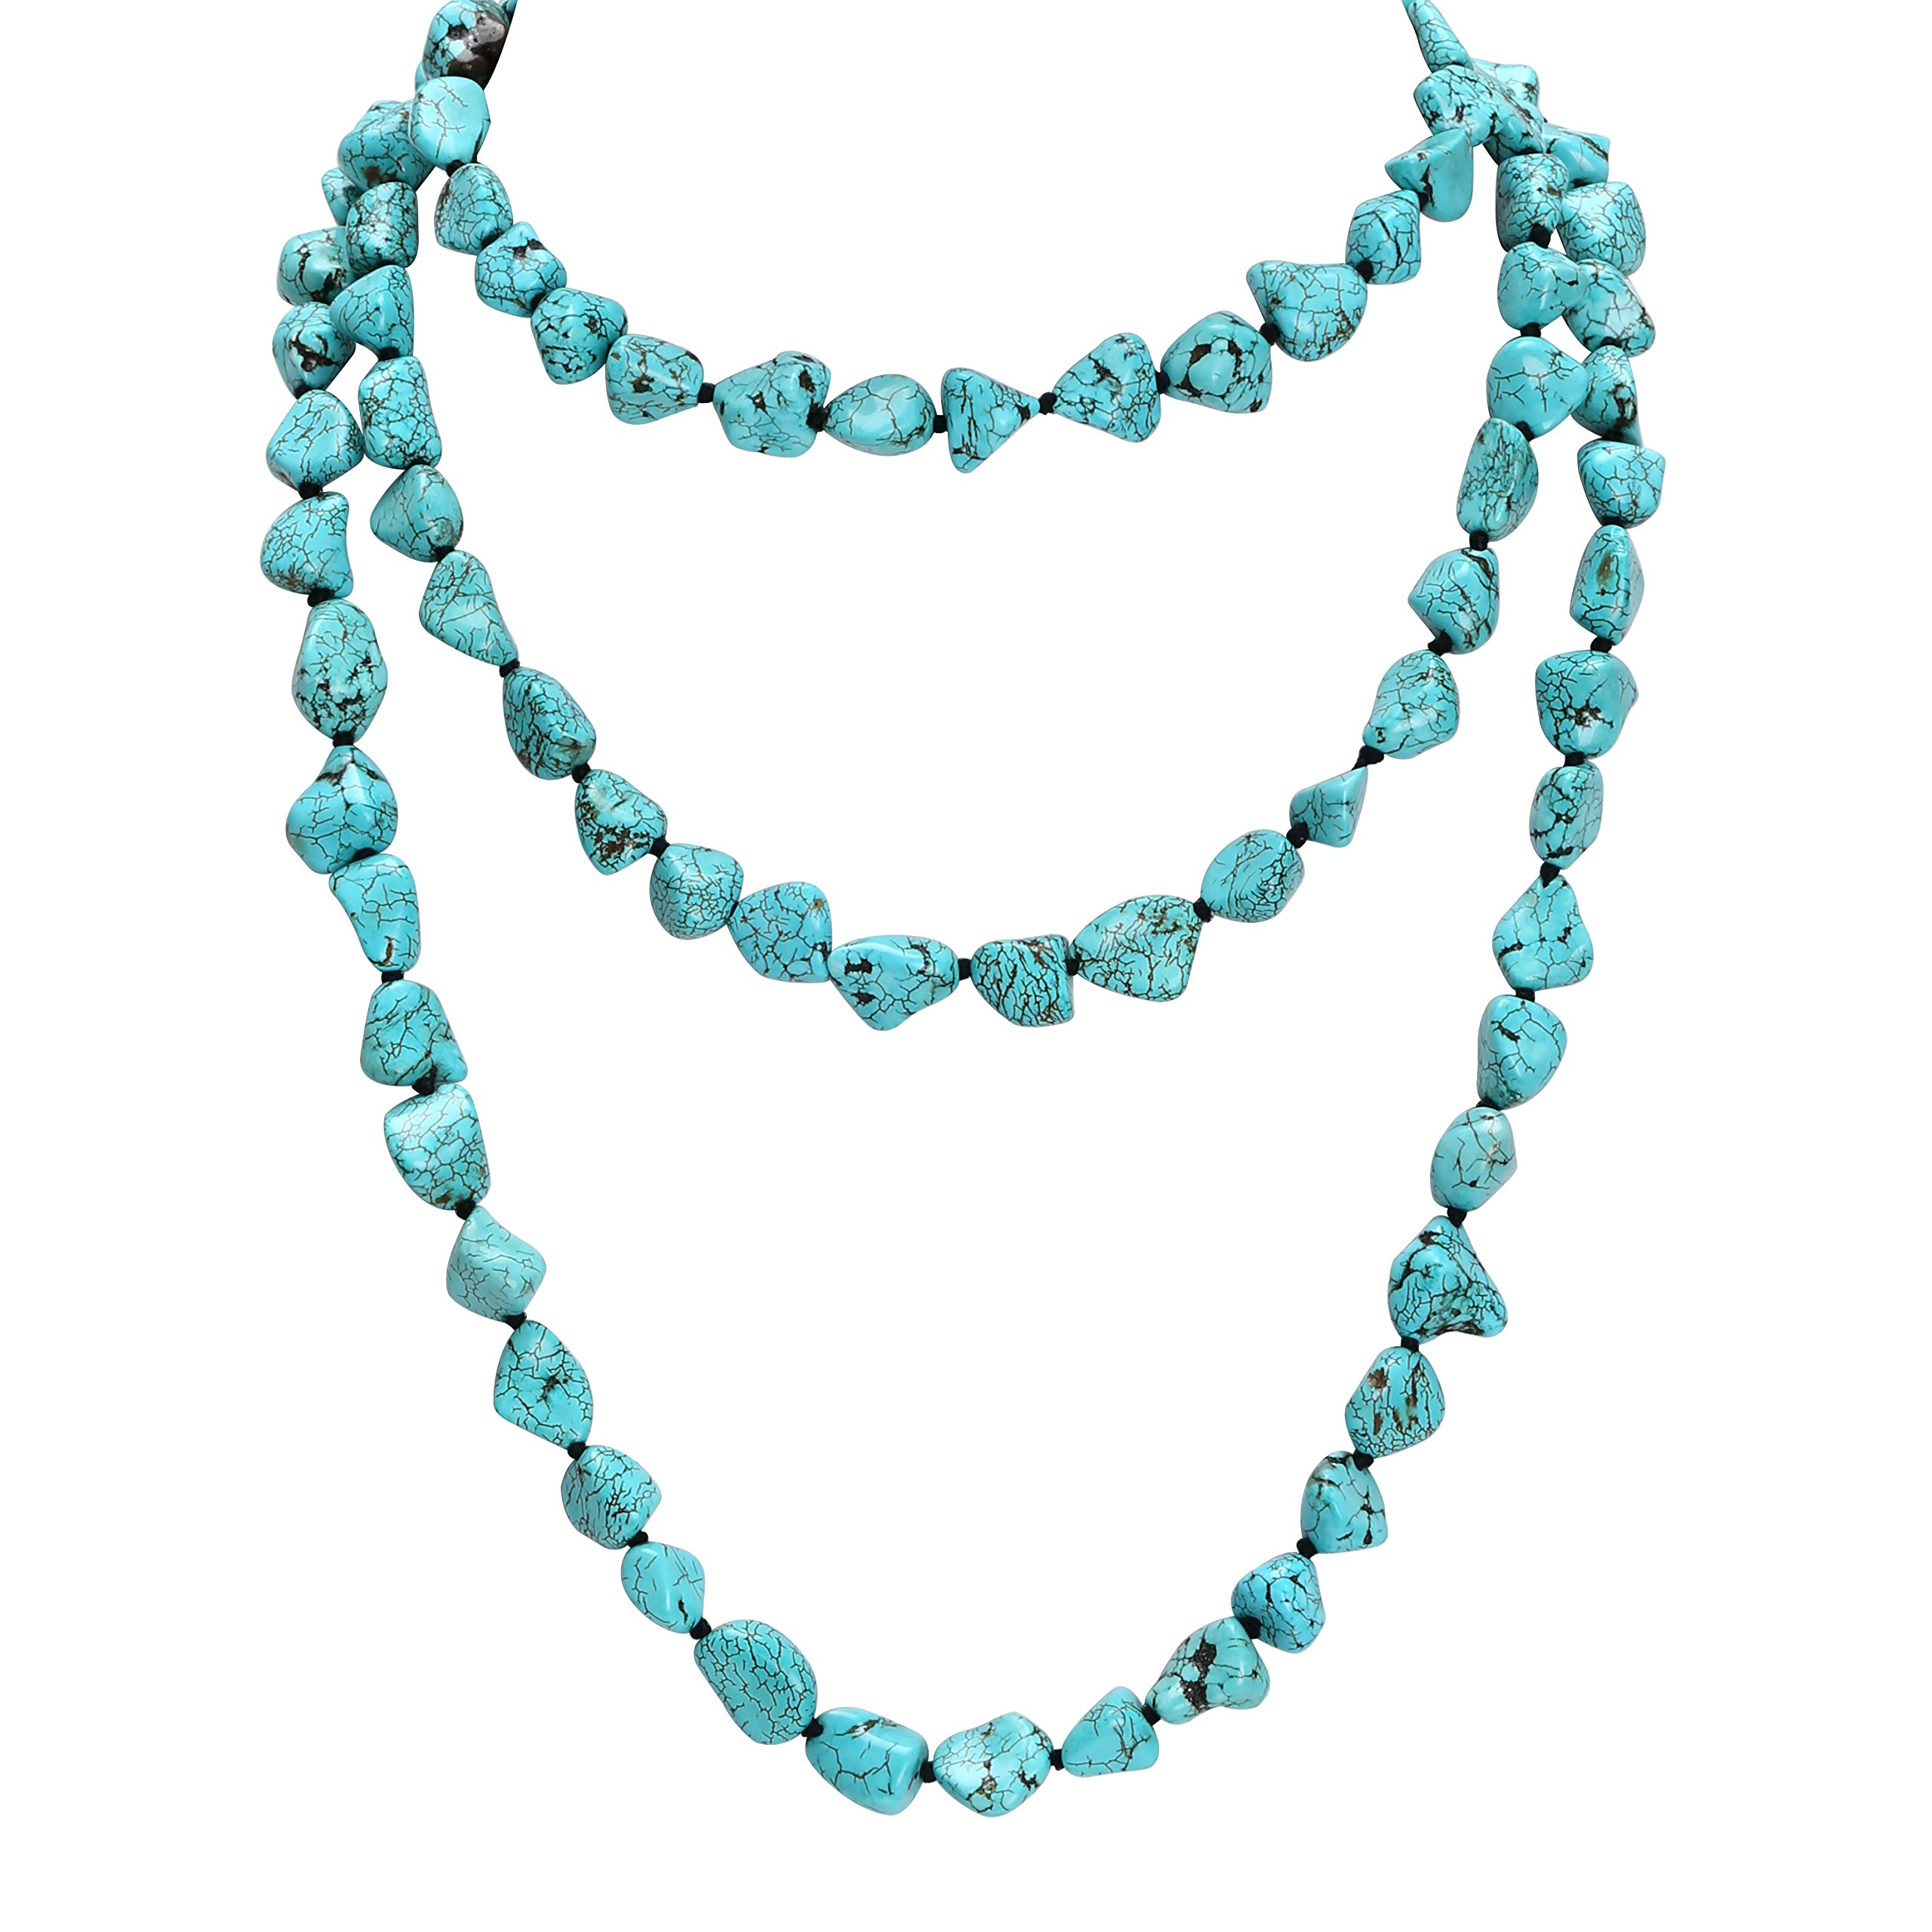 POTESSA Turquoise Beads Endless Necklace Long Knotted Stone Multi-Strand Layer Necklaces Handmade Jewelry 59''